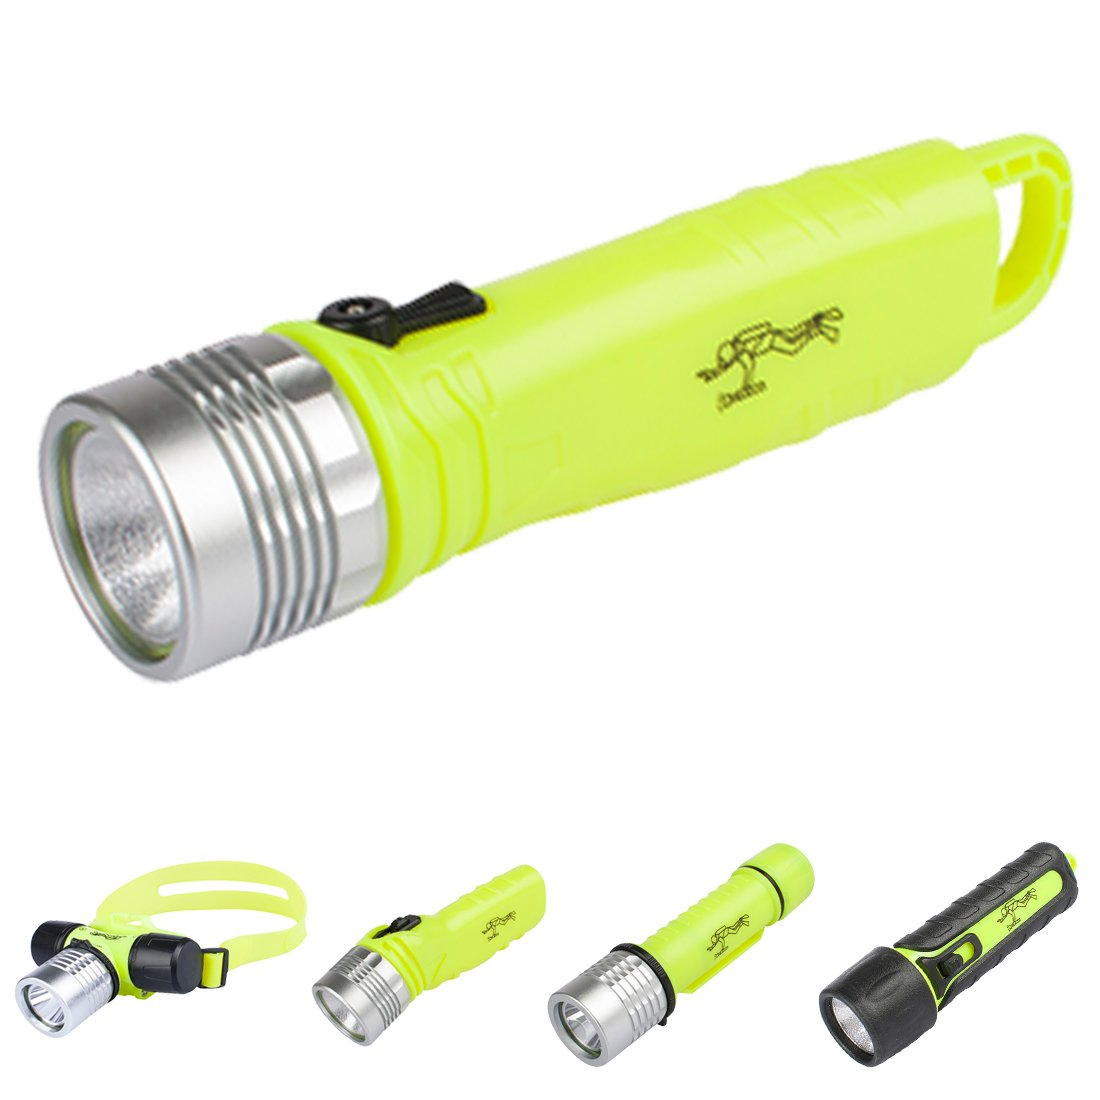 Three trees Underwater Diving Flashlight,3W 110 Lumens Waterproof LED Light,Magnetic Rotany Switch Safety Waterroof Underwater Buckle Flashlight,For Scuba Diving Outdoor Under Water Sports